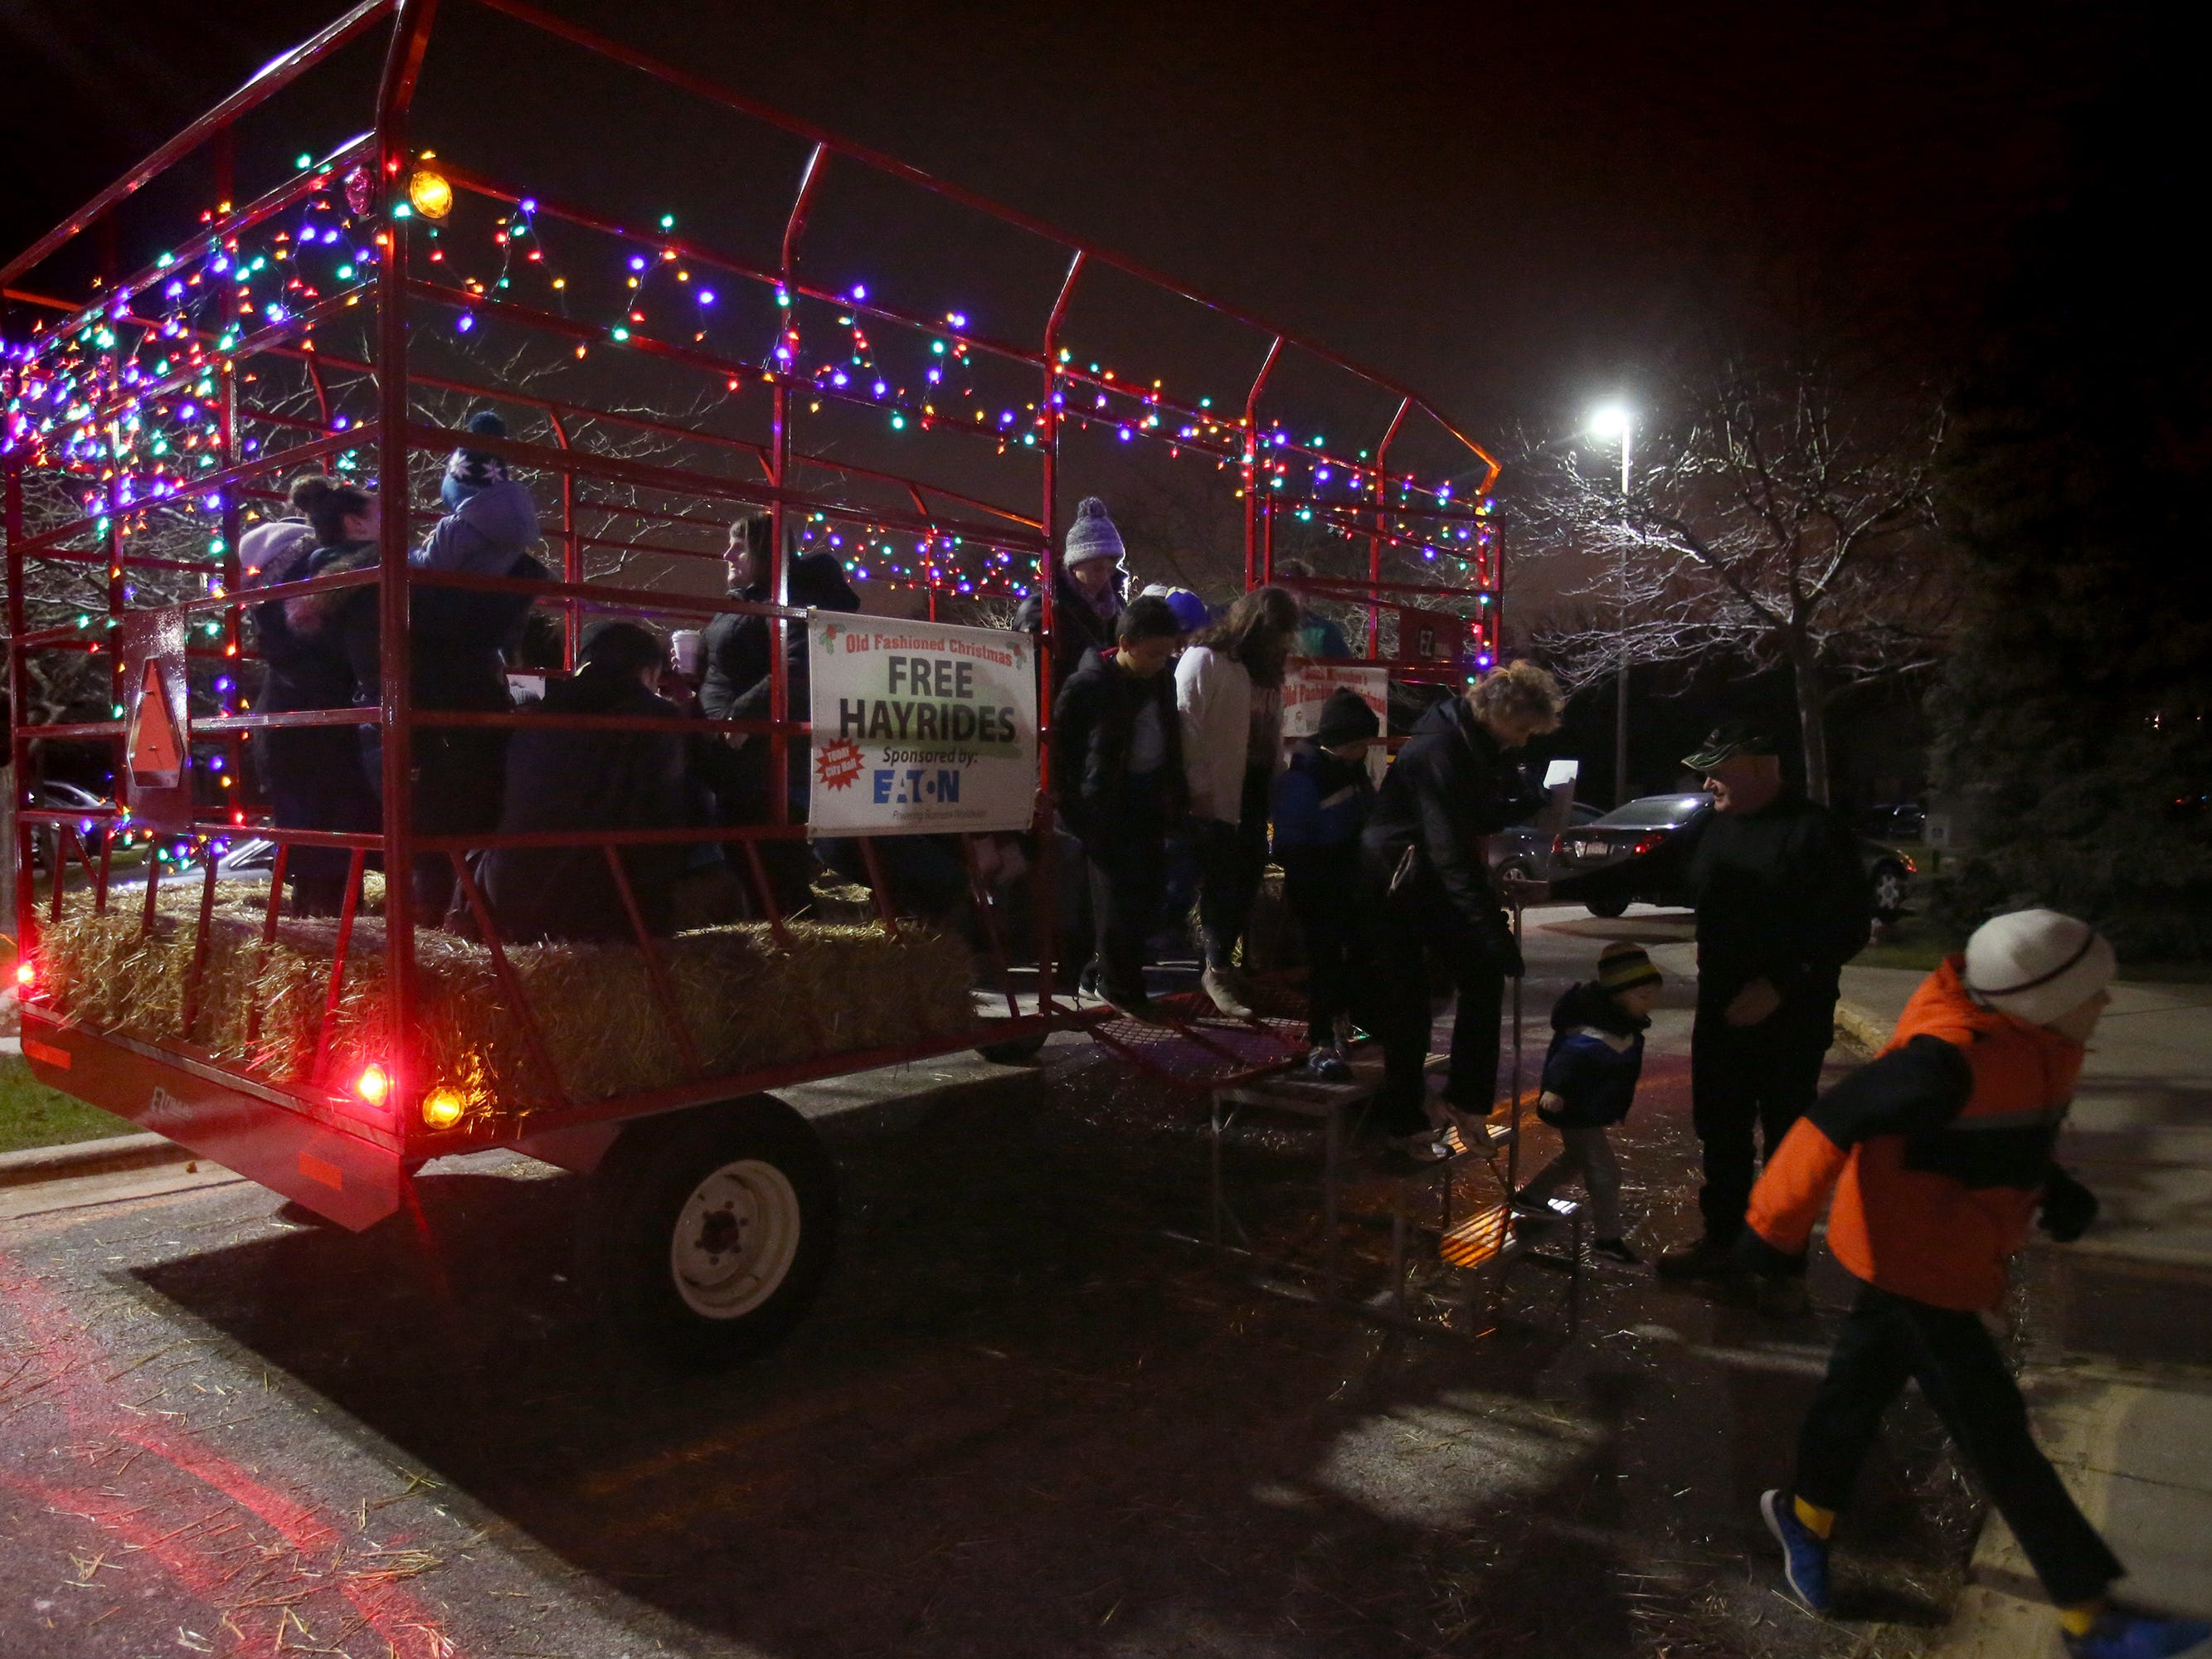 Guests to the Old Fashioned Christmas festivities at City Hall unload from a hayride about the area on Nov. 24.